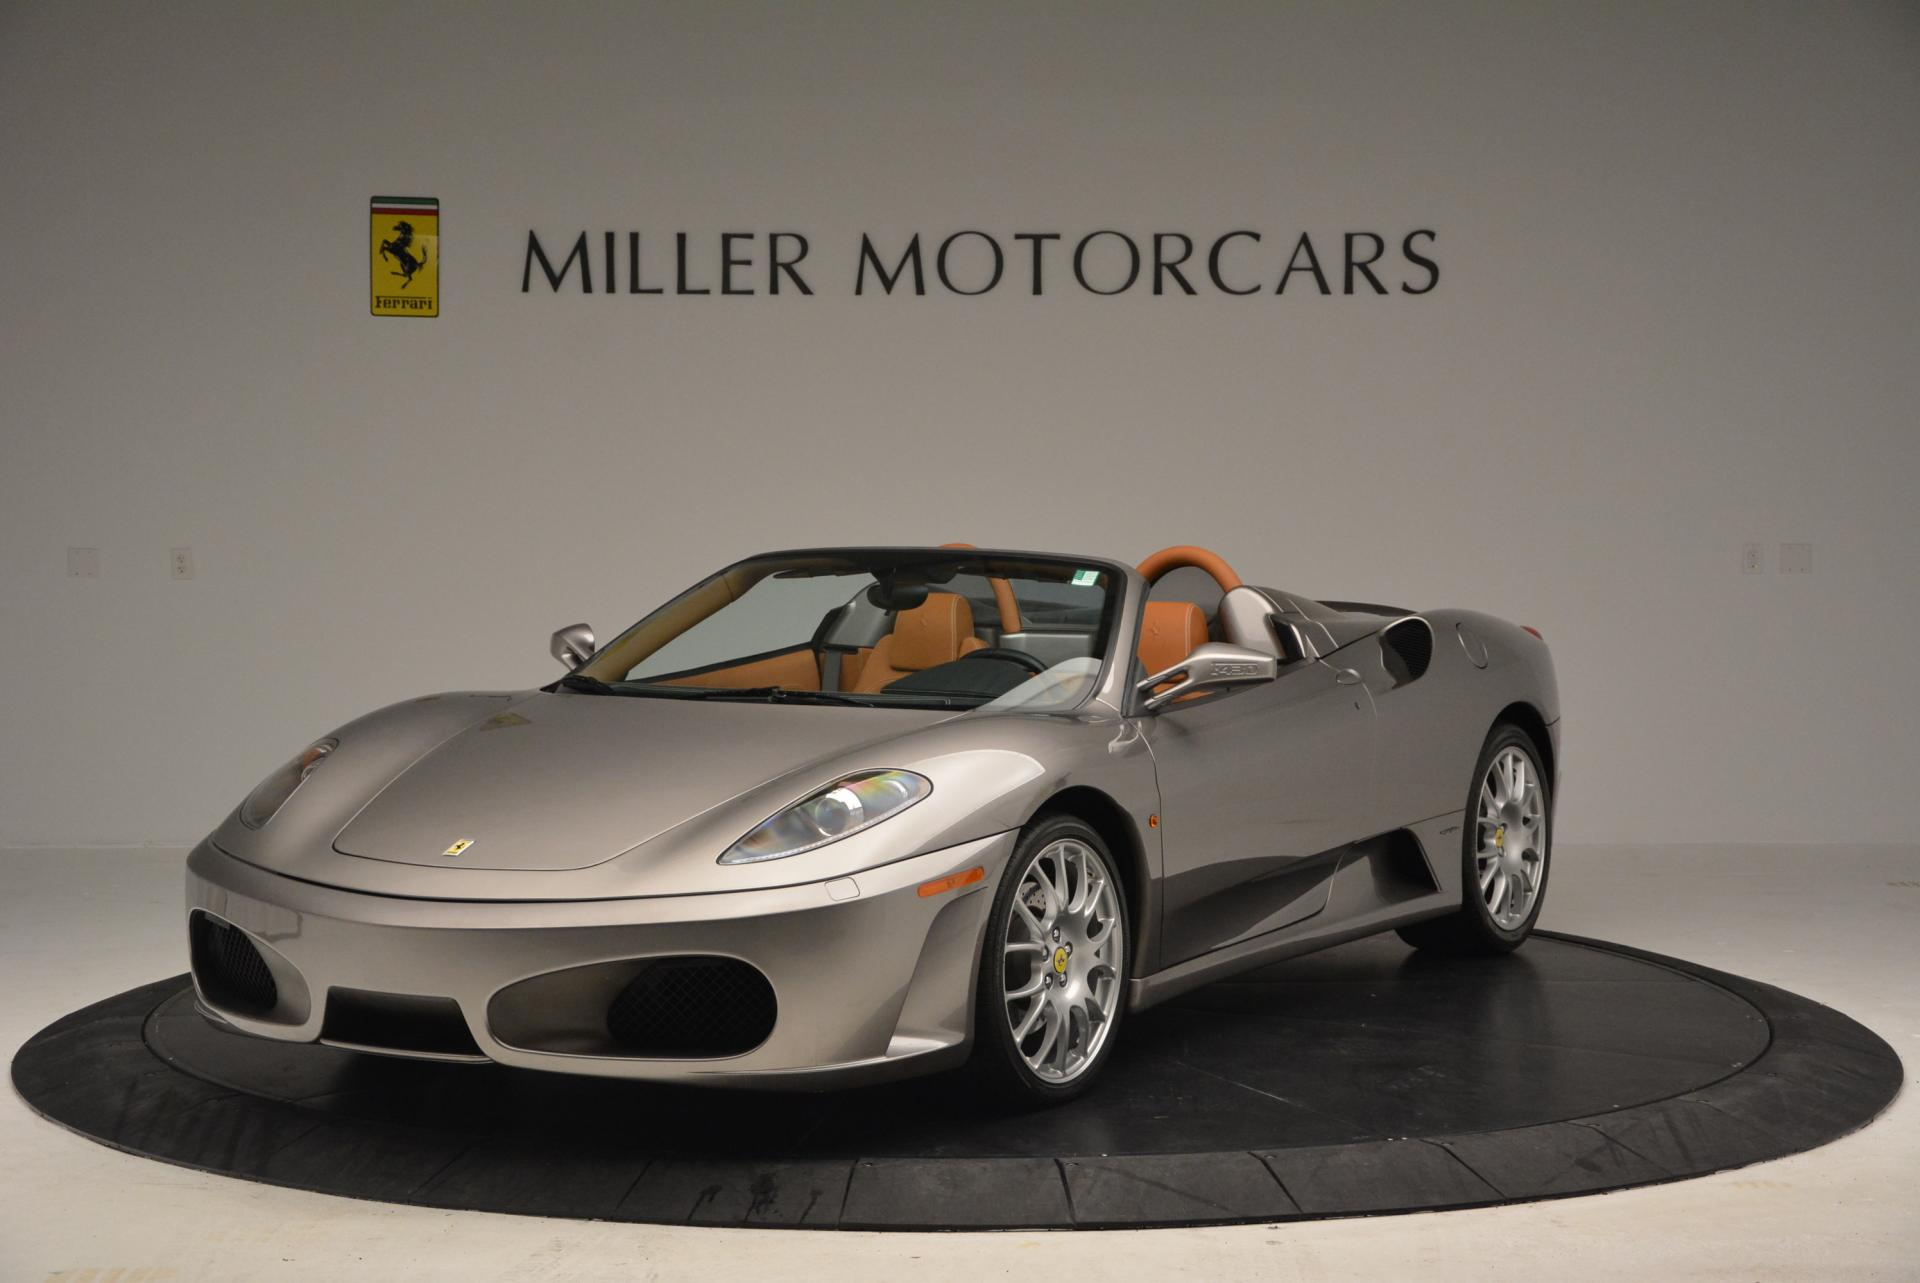 Used 2005 Ferrari F430 Spider 6-Speed Manual for sale Sold at Pagani of Greenwich in Greenwich CT 06830 1